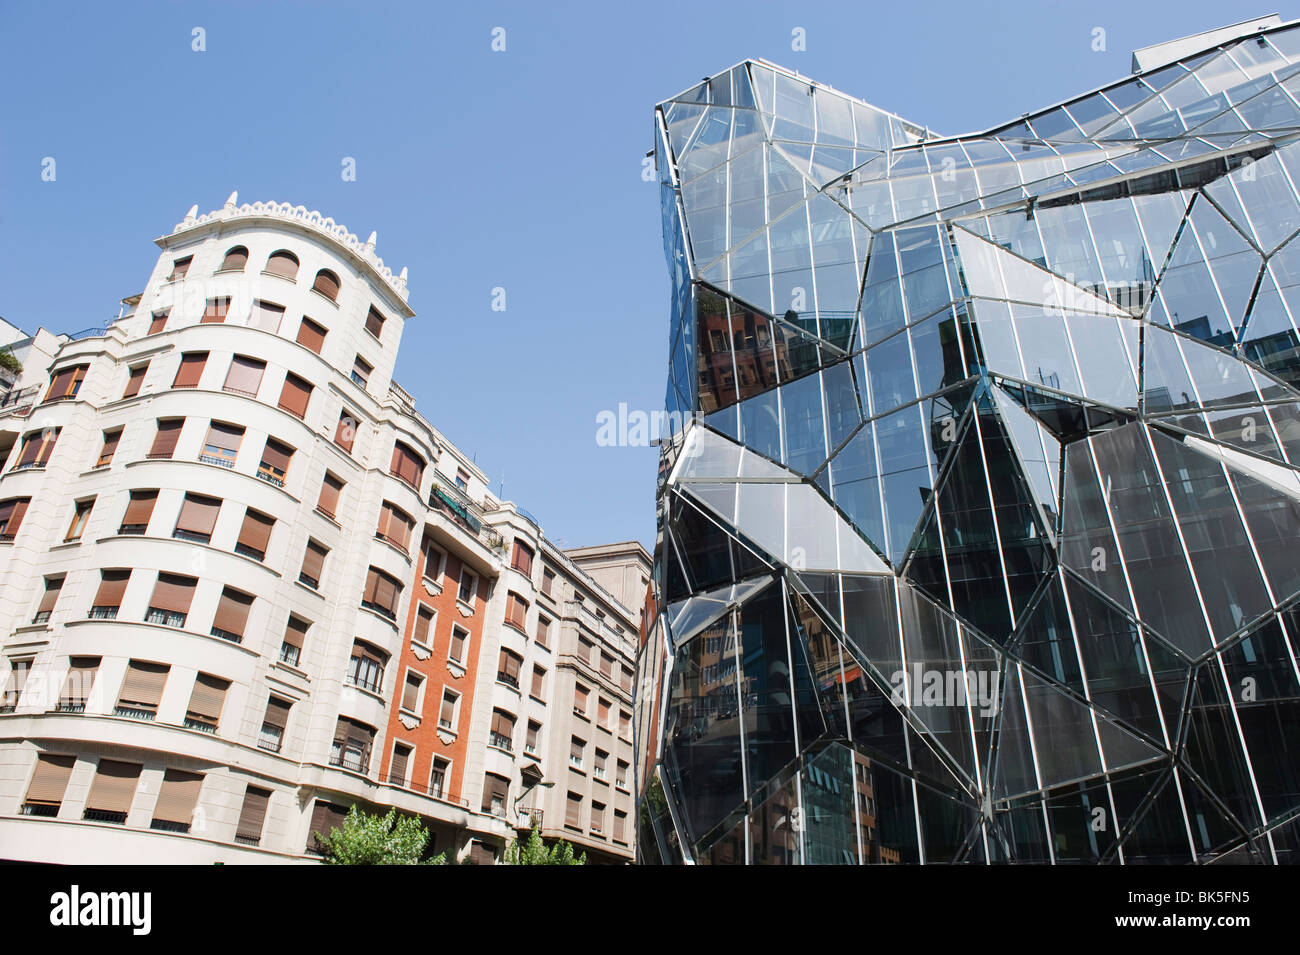 Moderne Architektur des Department of Health, Bilbao, Baskisches Land, Spanien, Europa Stockbild